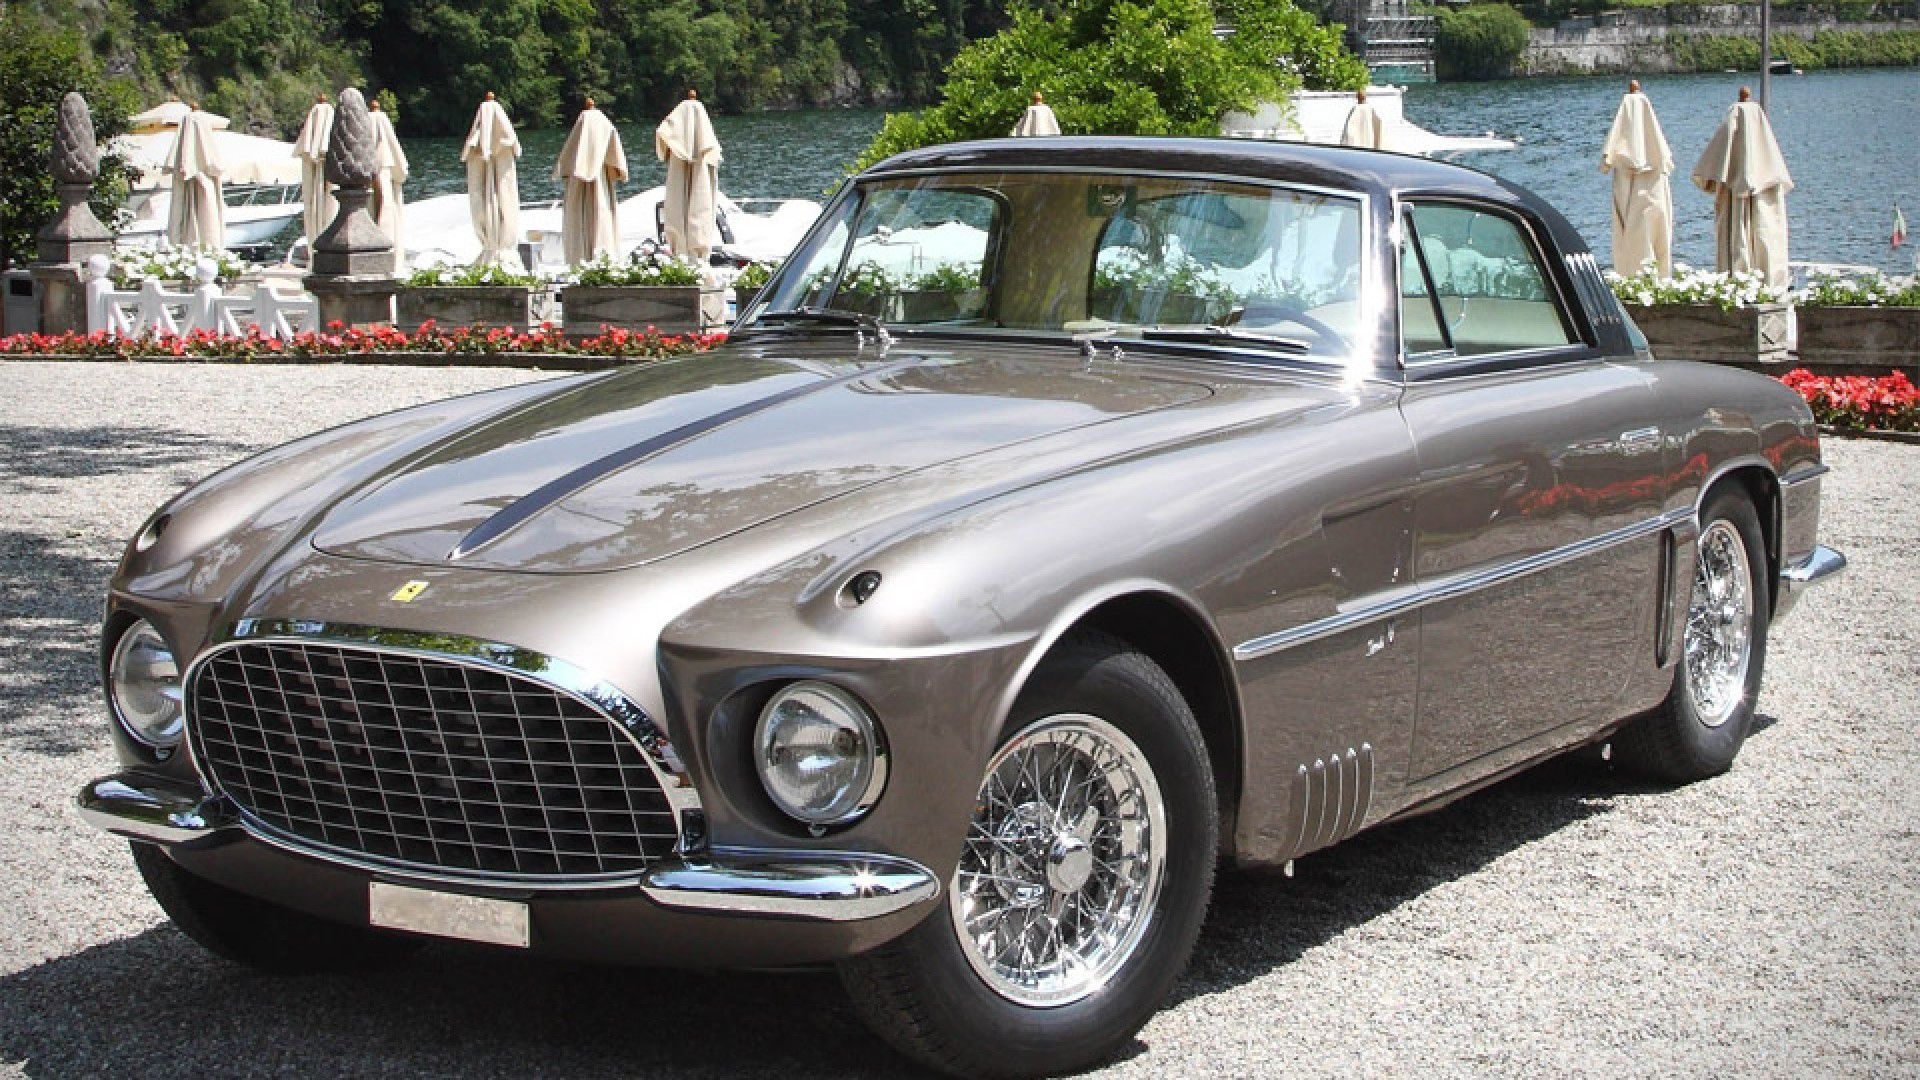 Ferrari 250 S Vignale Coupe 187 Definitive List Cars